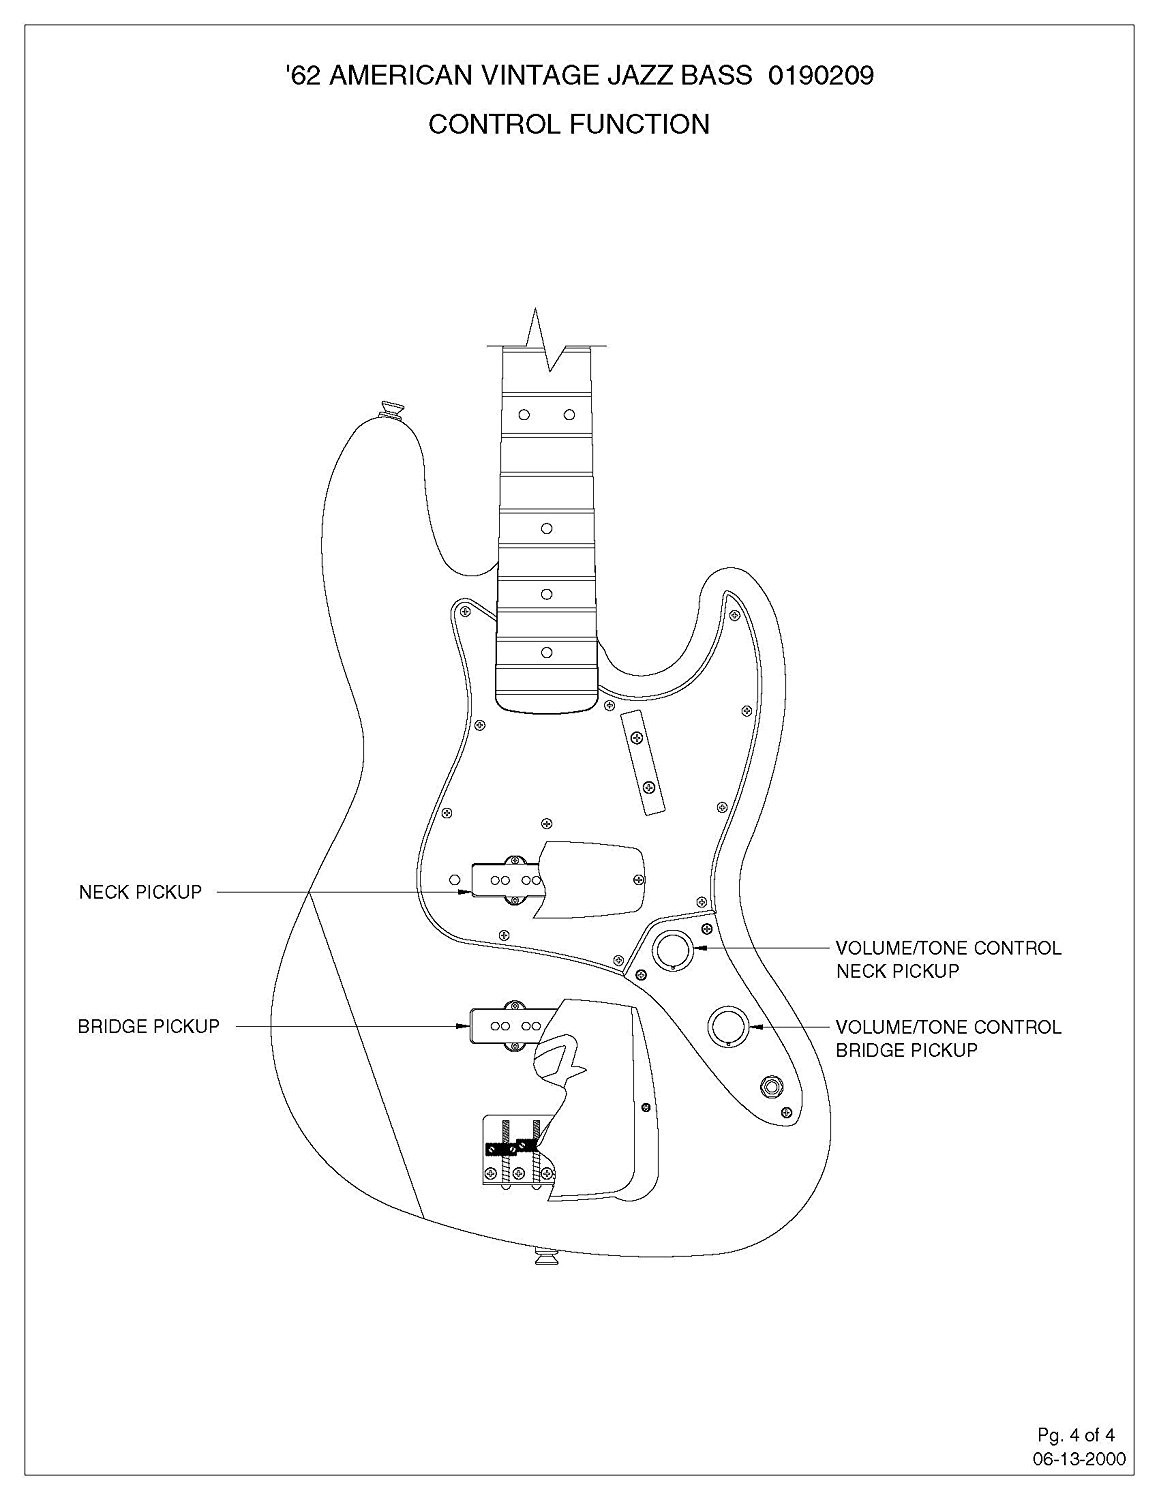 Stacked Pots Wiring Diagrams Solutions Strat Diagram For Bridge Tone Control 62 Jazz Bass Introduction To Electrical